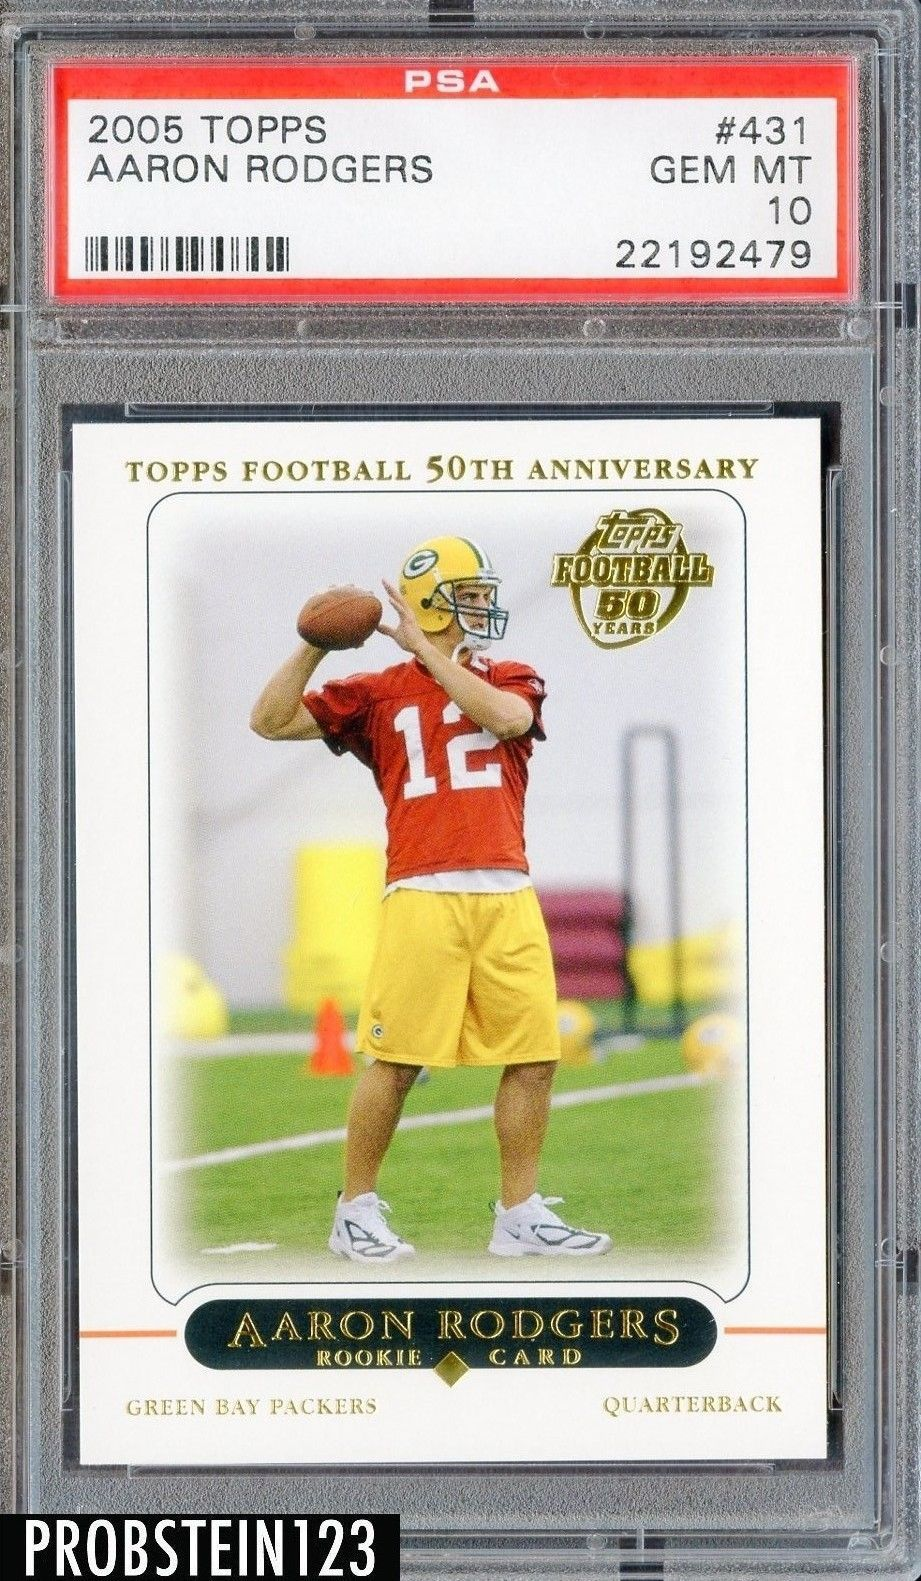 2005 topps aaron rodgers green bay packers football